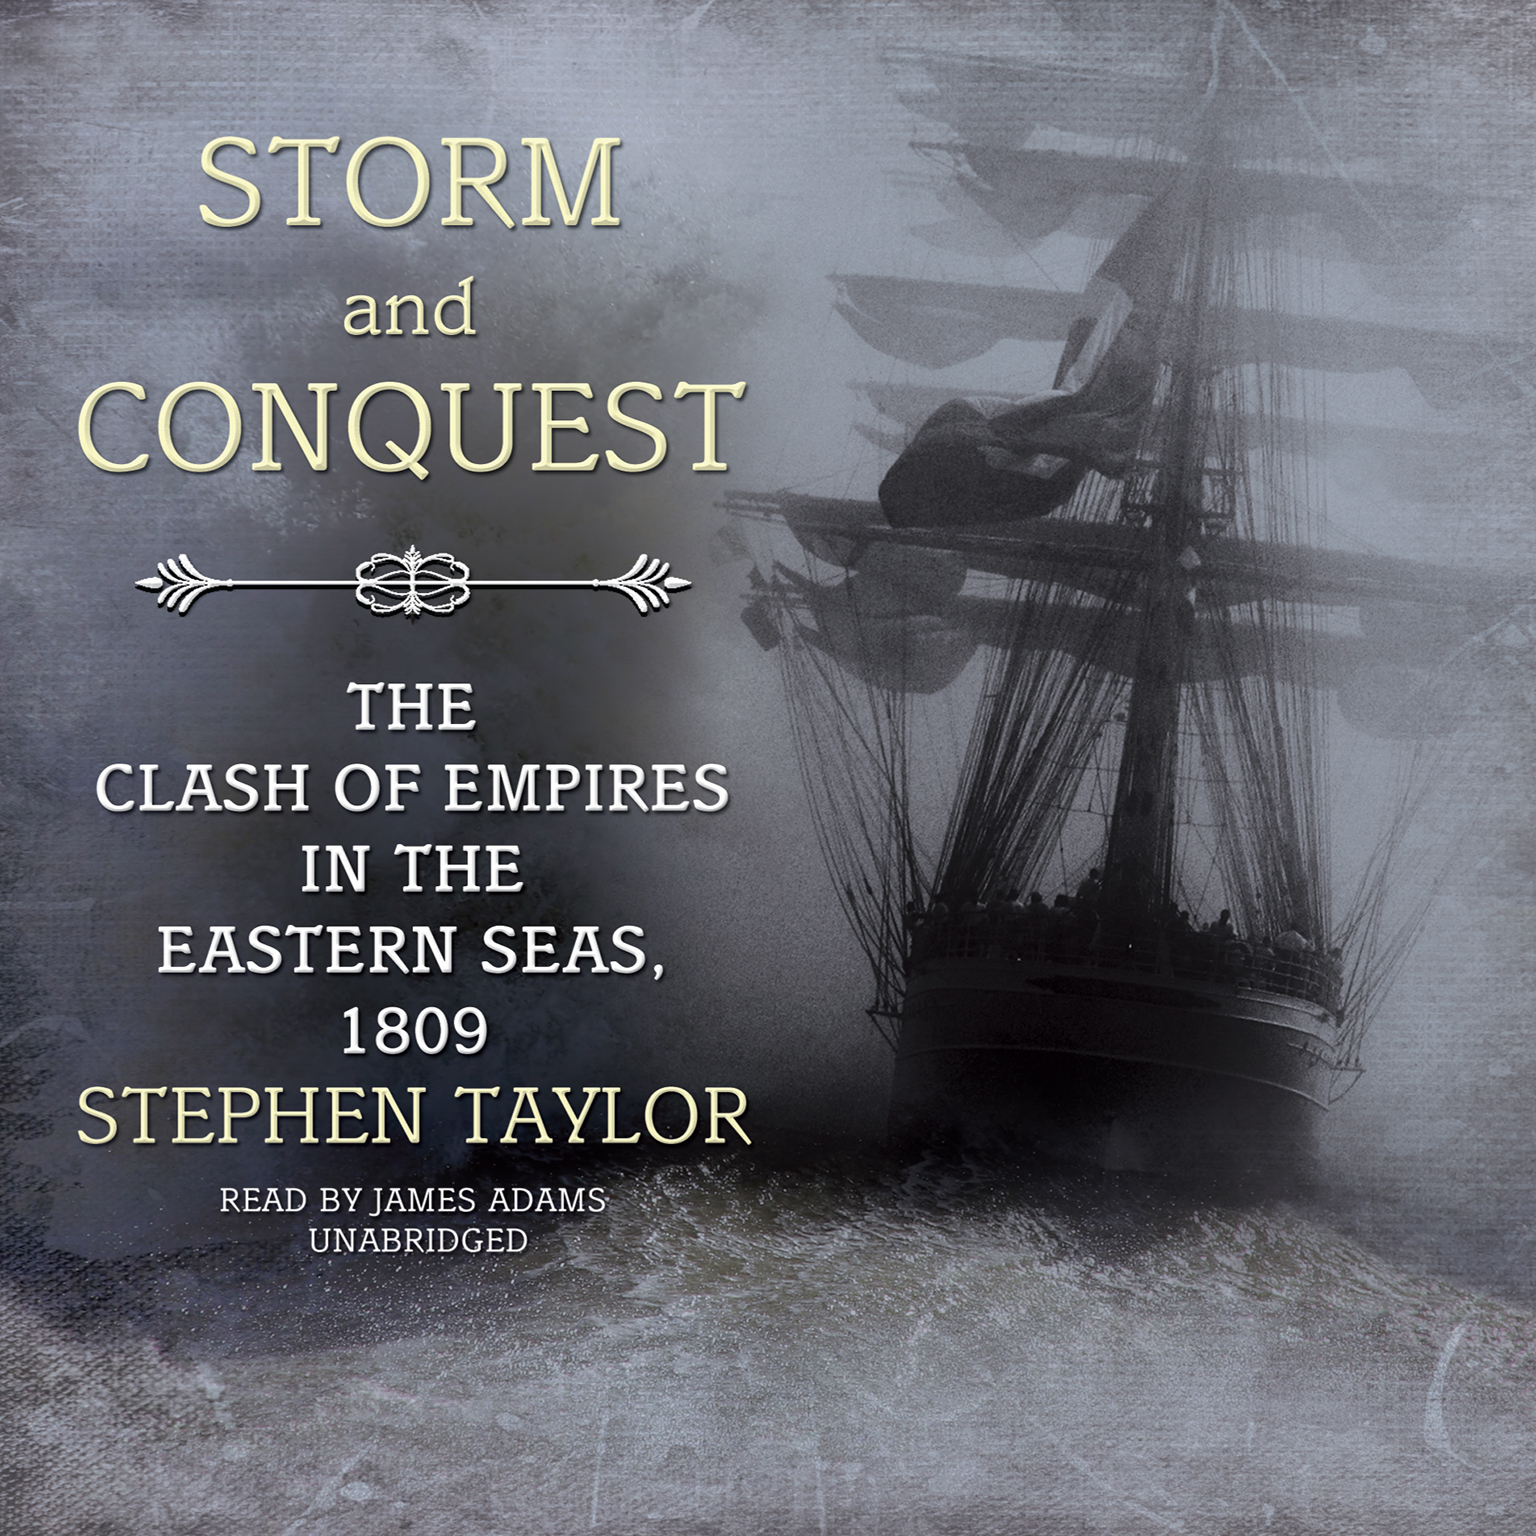 Printable Storm and Conquest: The Clash of Empires in the Eastern Seas, 1809 Audiobook Cover Art